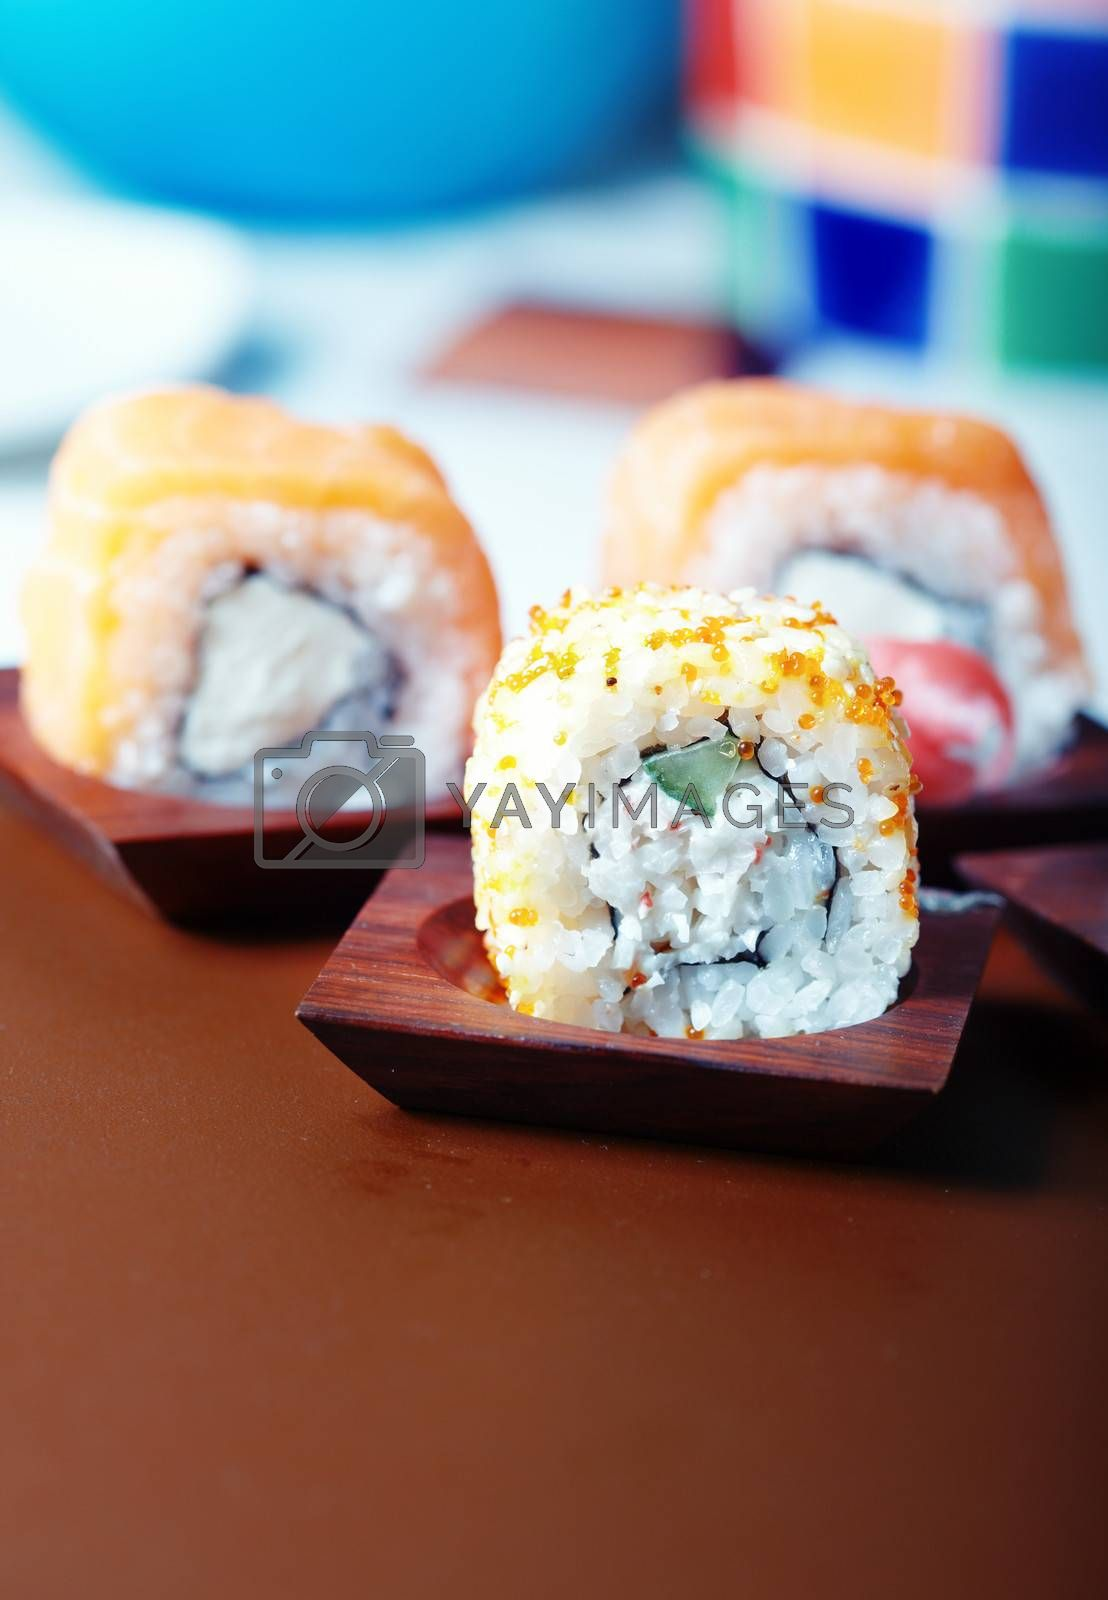 Sushi on the table. Vertical photo with natural colors. Shallow depth of field added for natural view